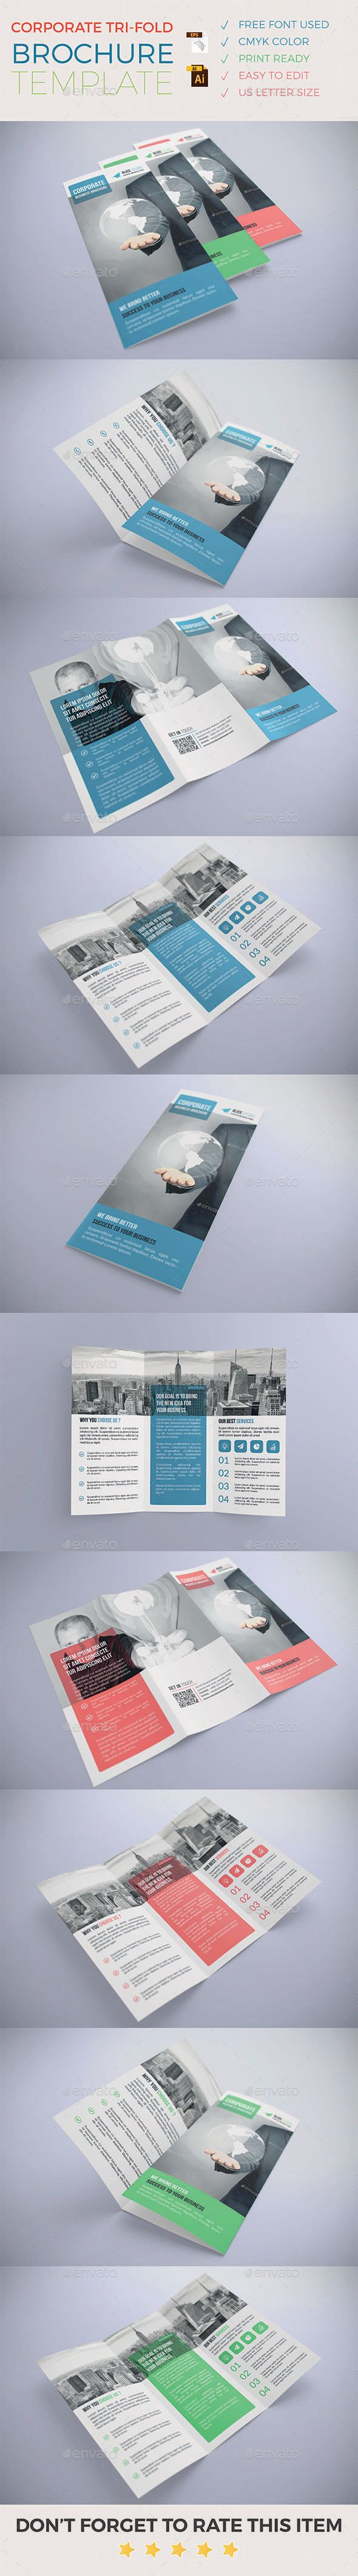 The Best Tri Fold Brochure Template Ideas On Pinterest Tri - 85x11 tri fold brochure template